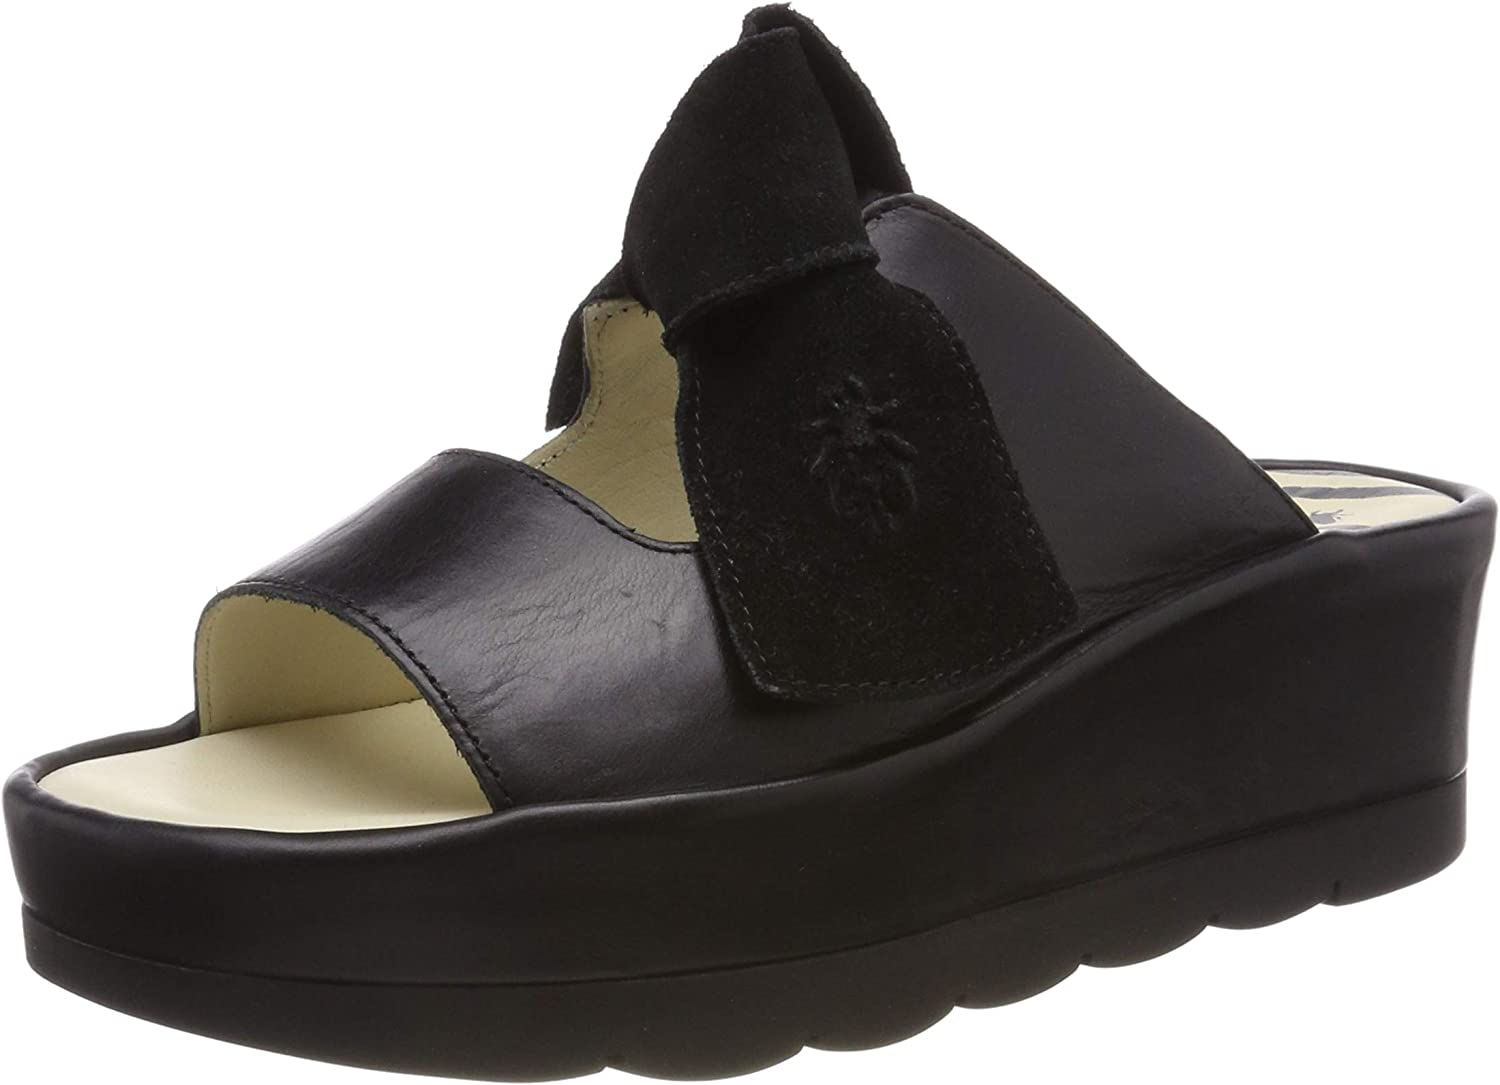 Fly London Oakland Mall Max 67% OFF Women's Mules EUR 36